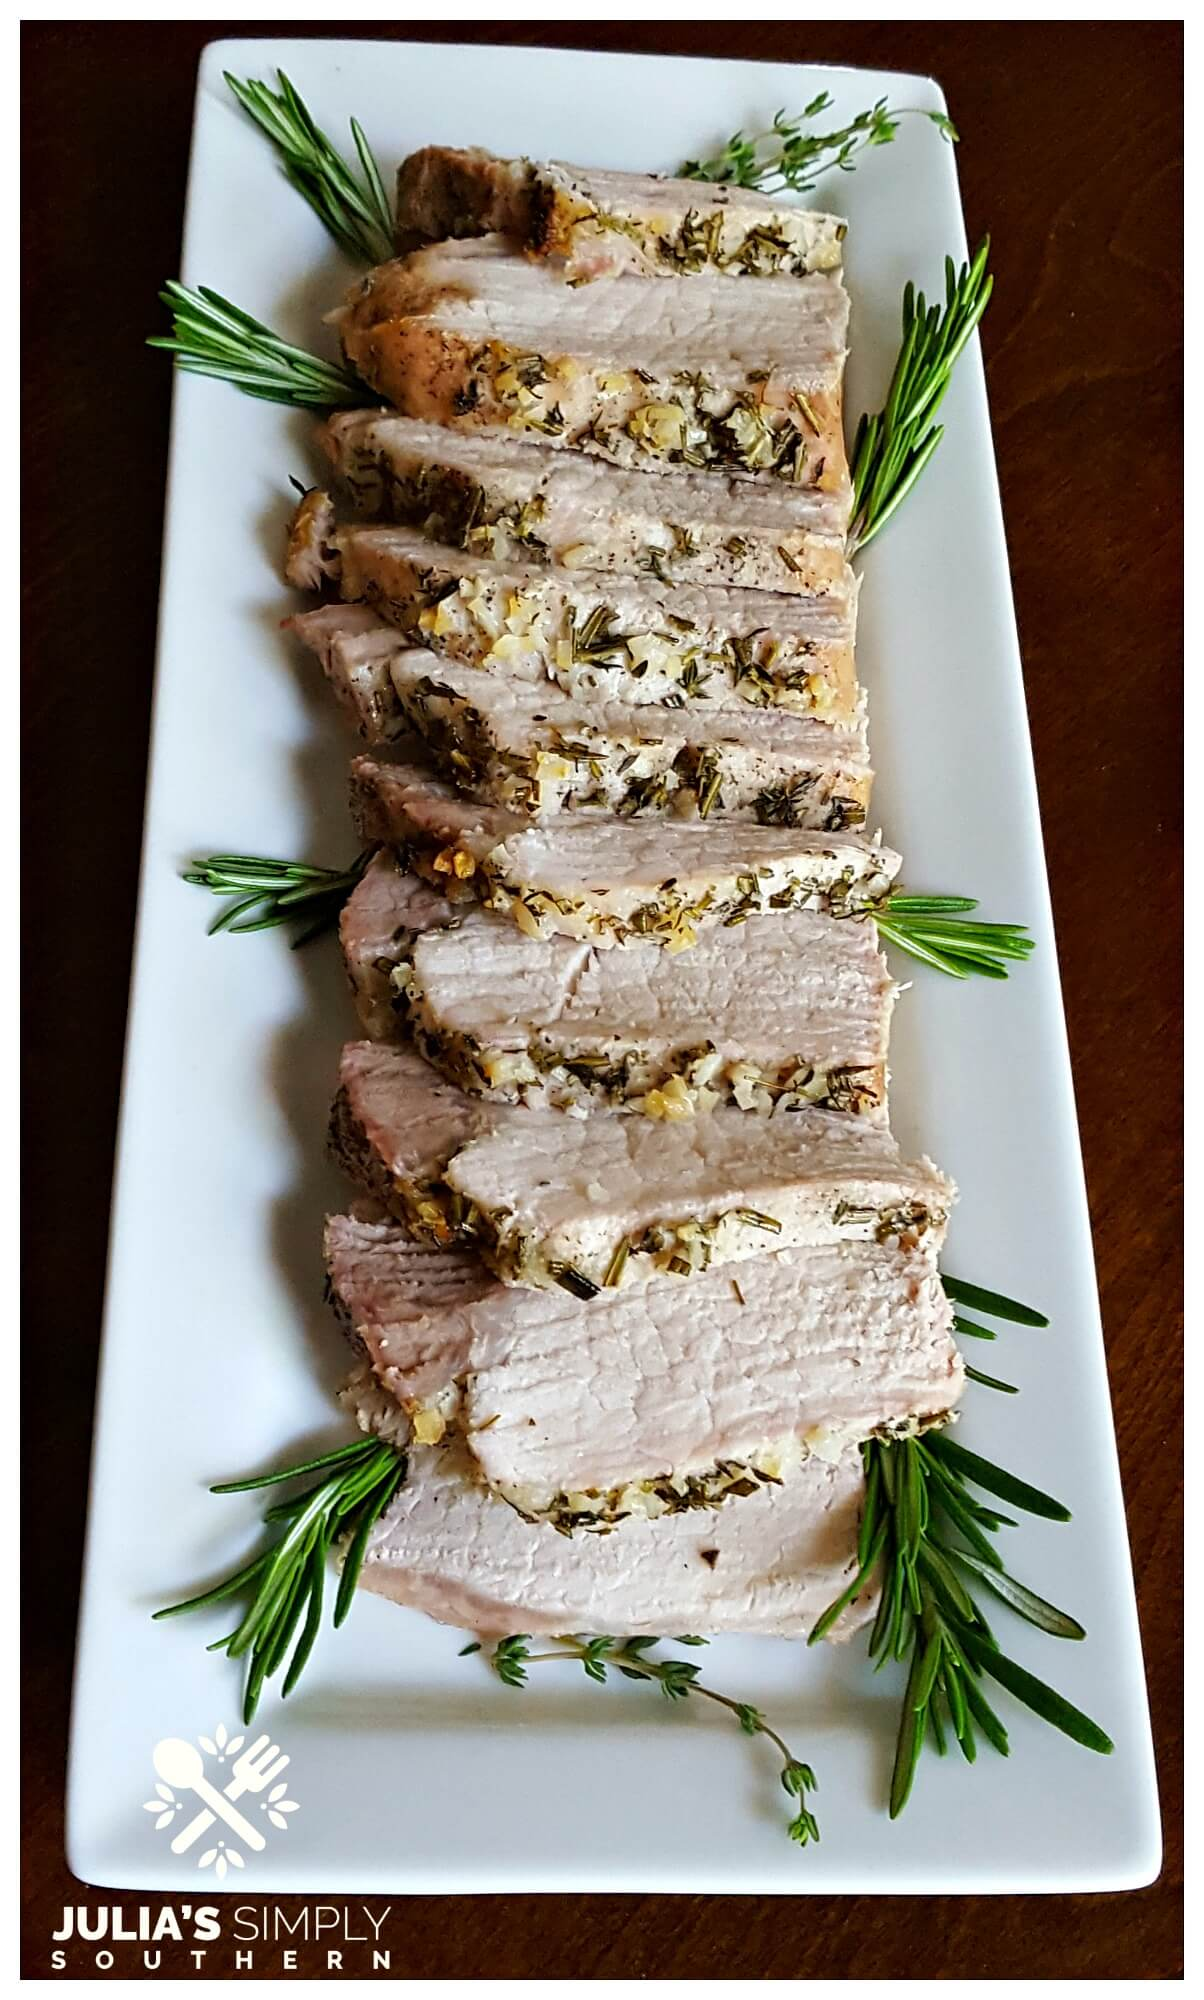 White platter with sliced pork loin roast crusted with herbs and garlic